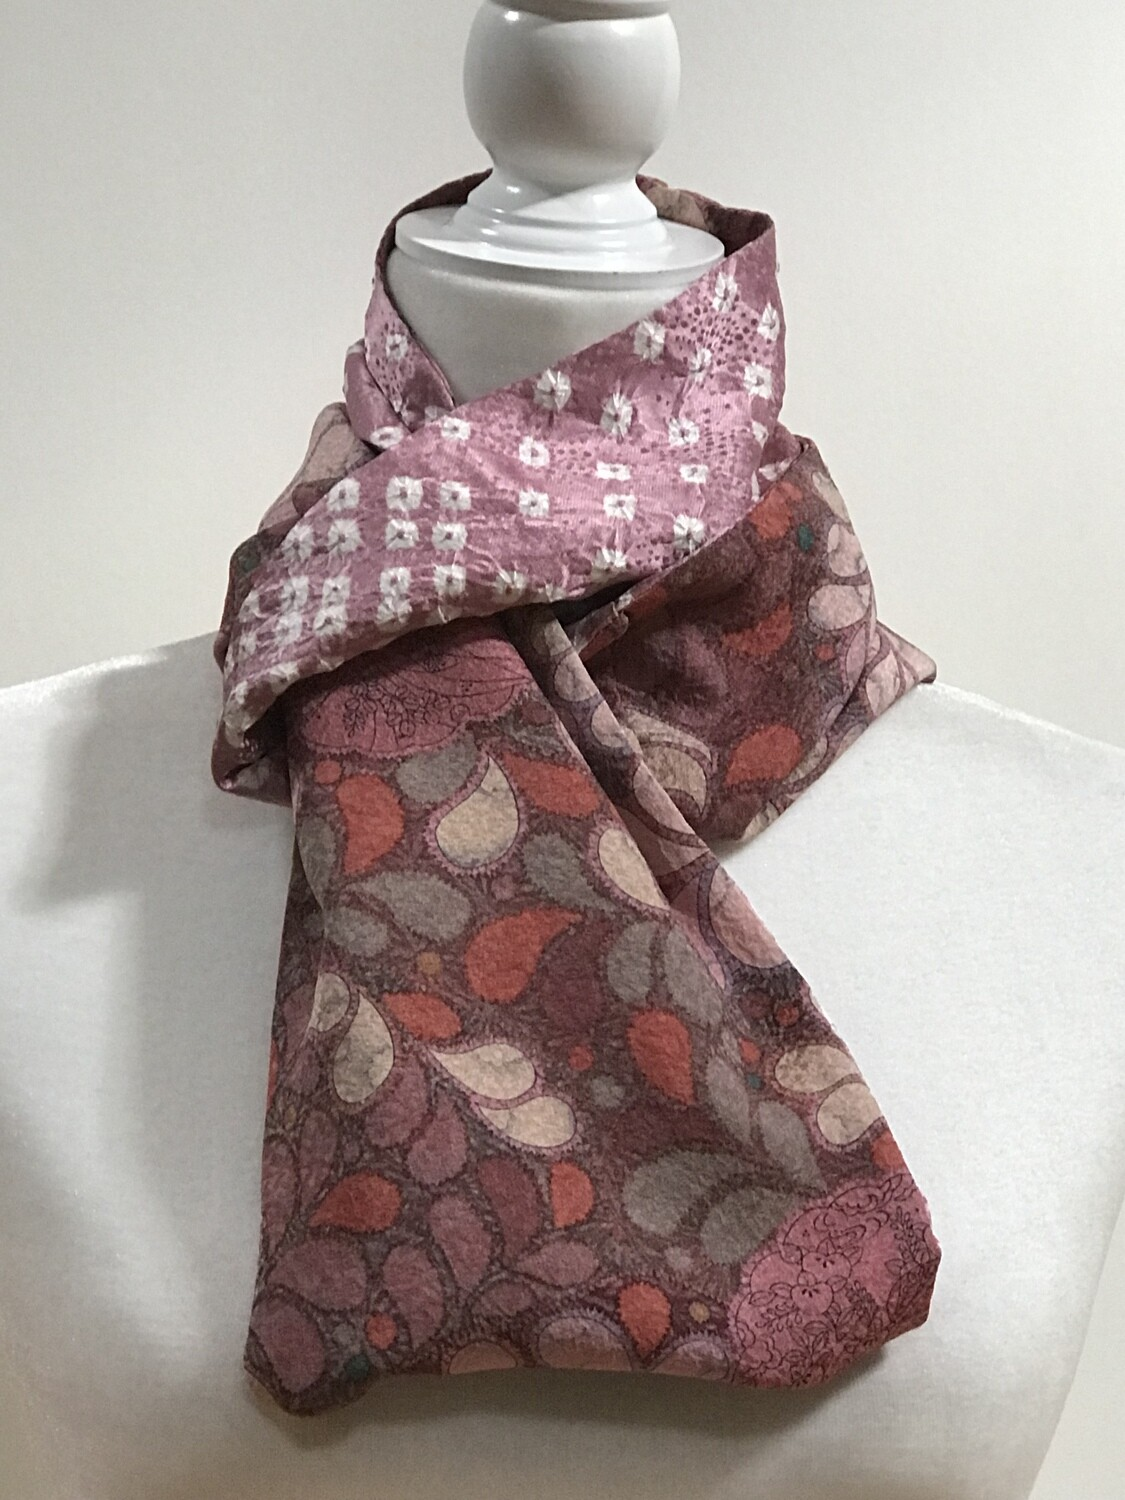 Double infinity scarf 7 x 58 in